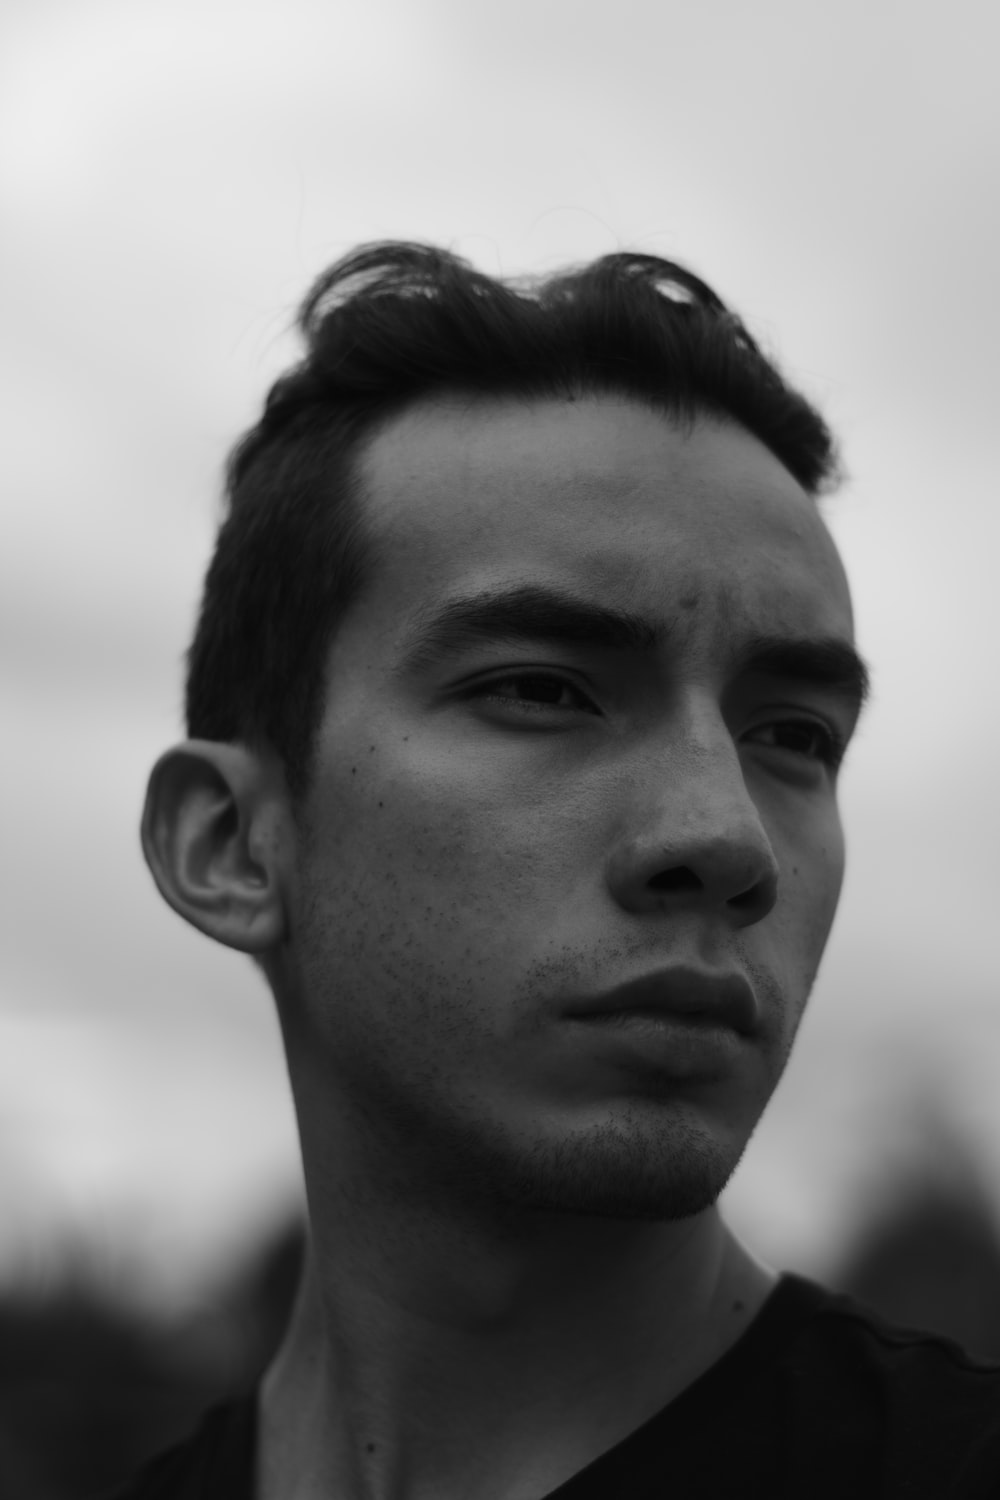 gray scale of man's face